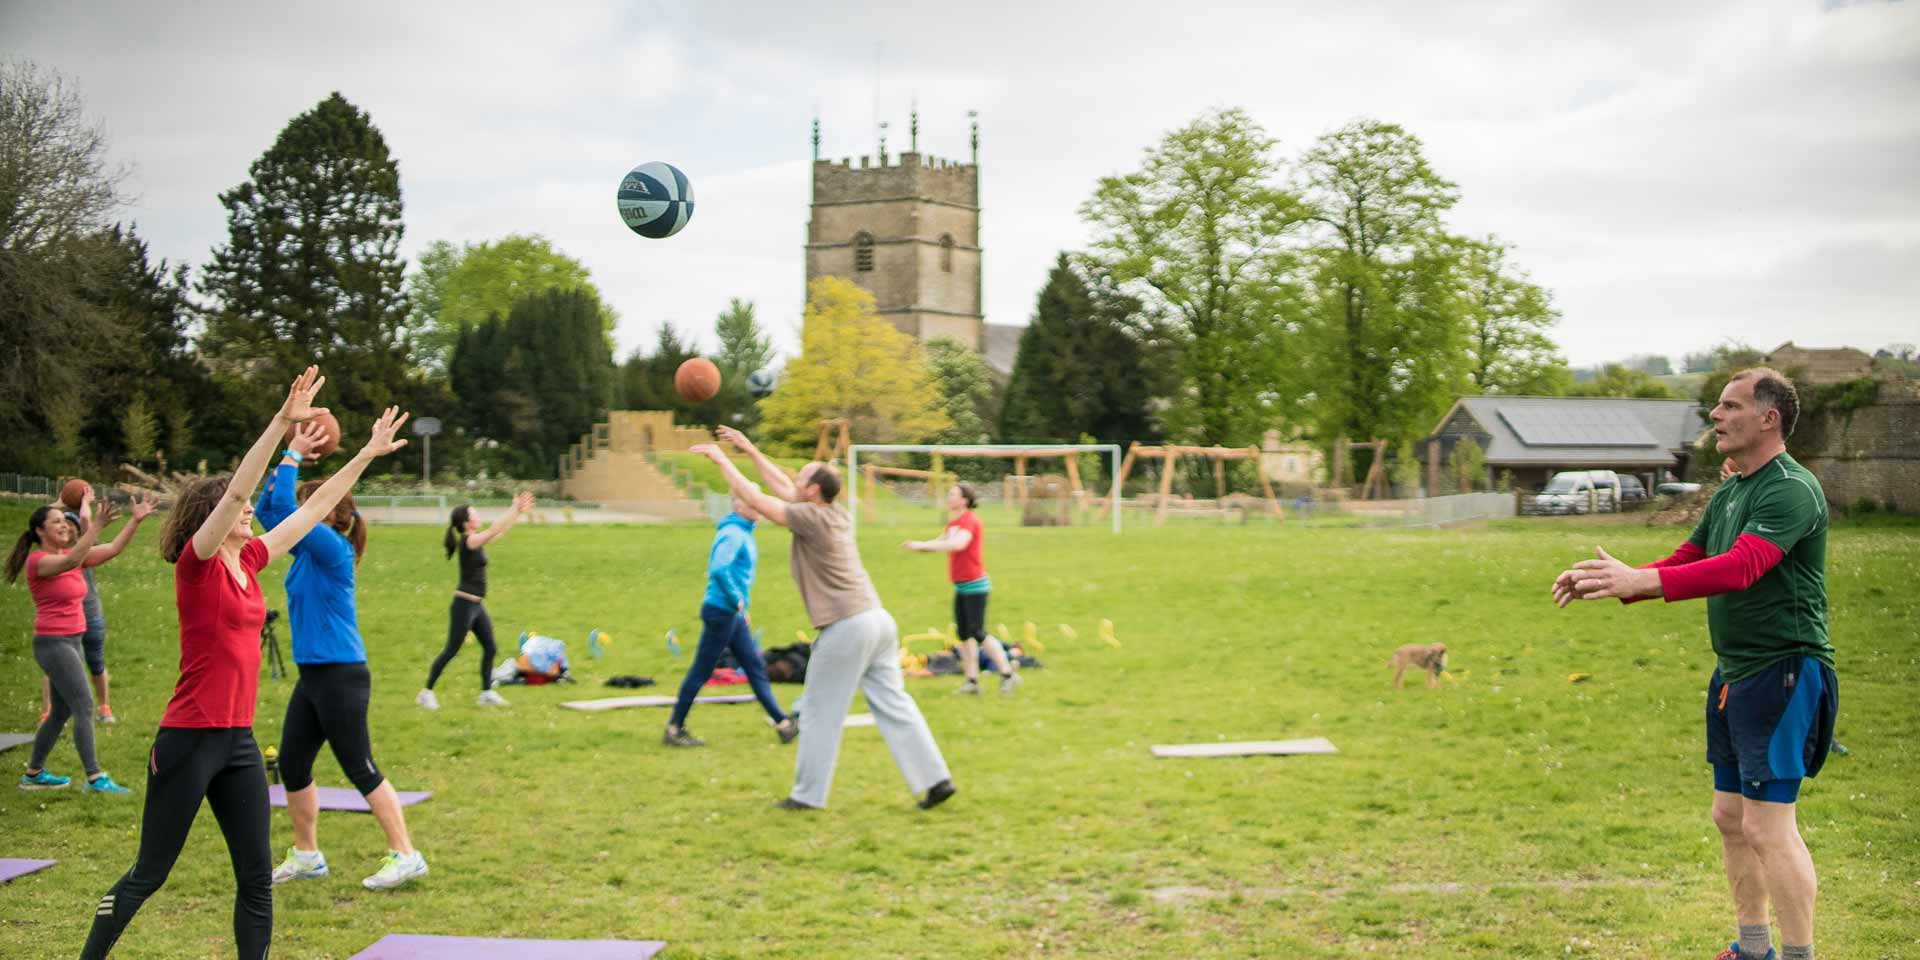 Find out more about Fresh Air Fitness sessions